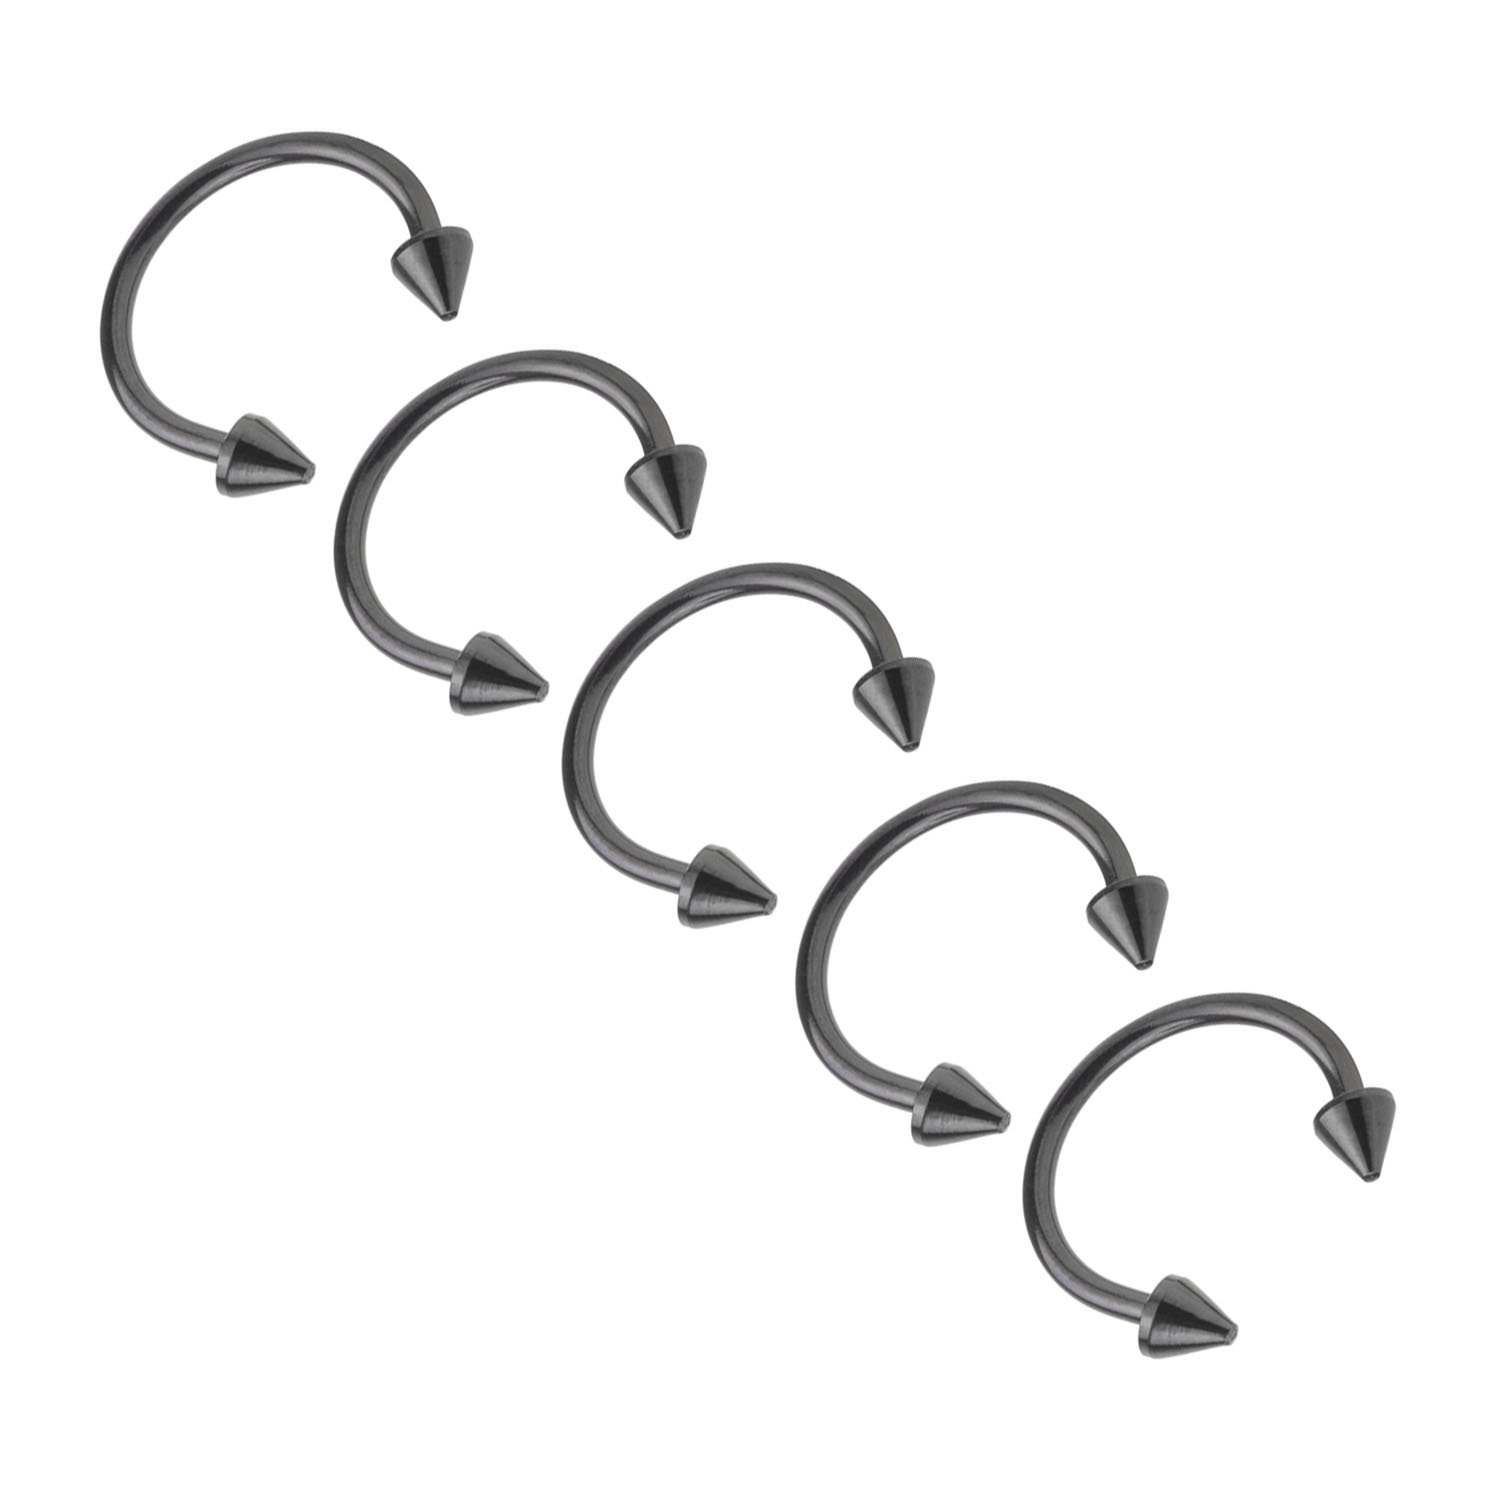 That's Us 3-12PCS 316L Stainless Steel 16G Spike Nose Piercing Septum Lip Nipple Eyebrow Rings Hoop Horseshoe Ear Piercings 8mm